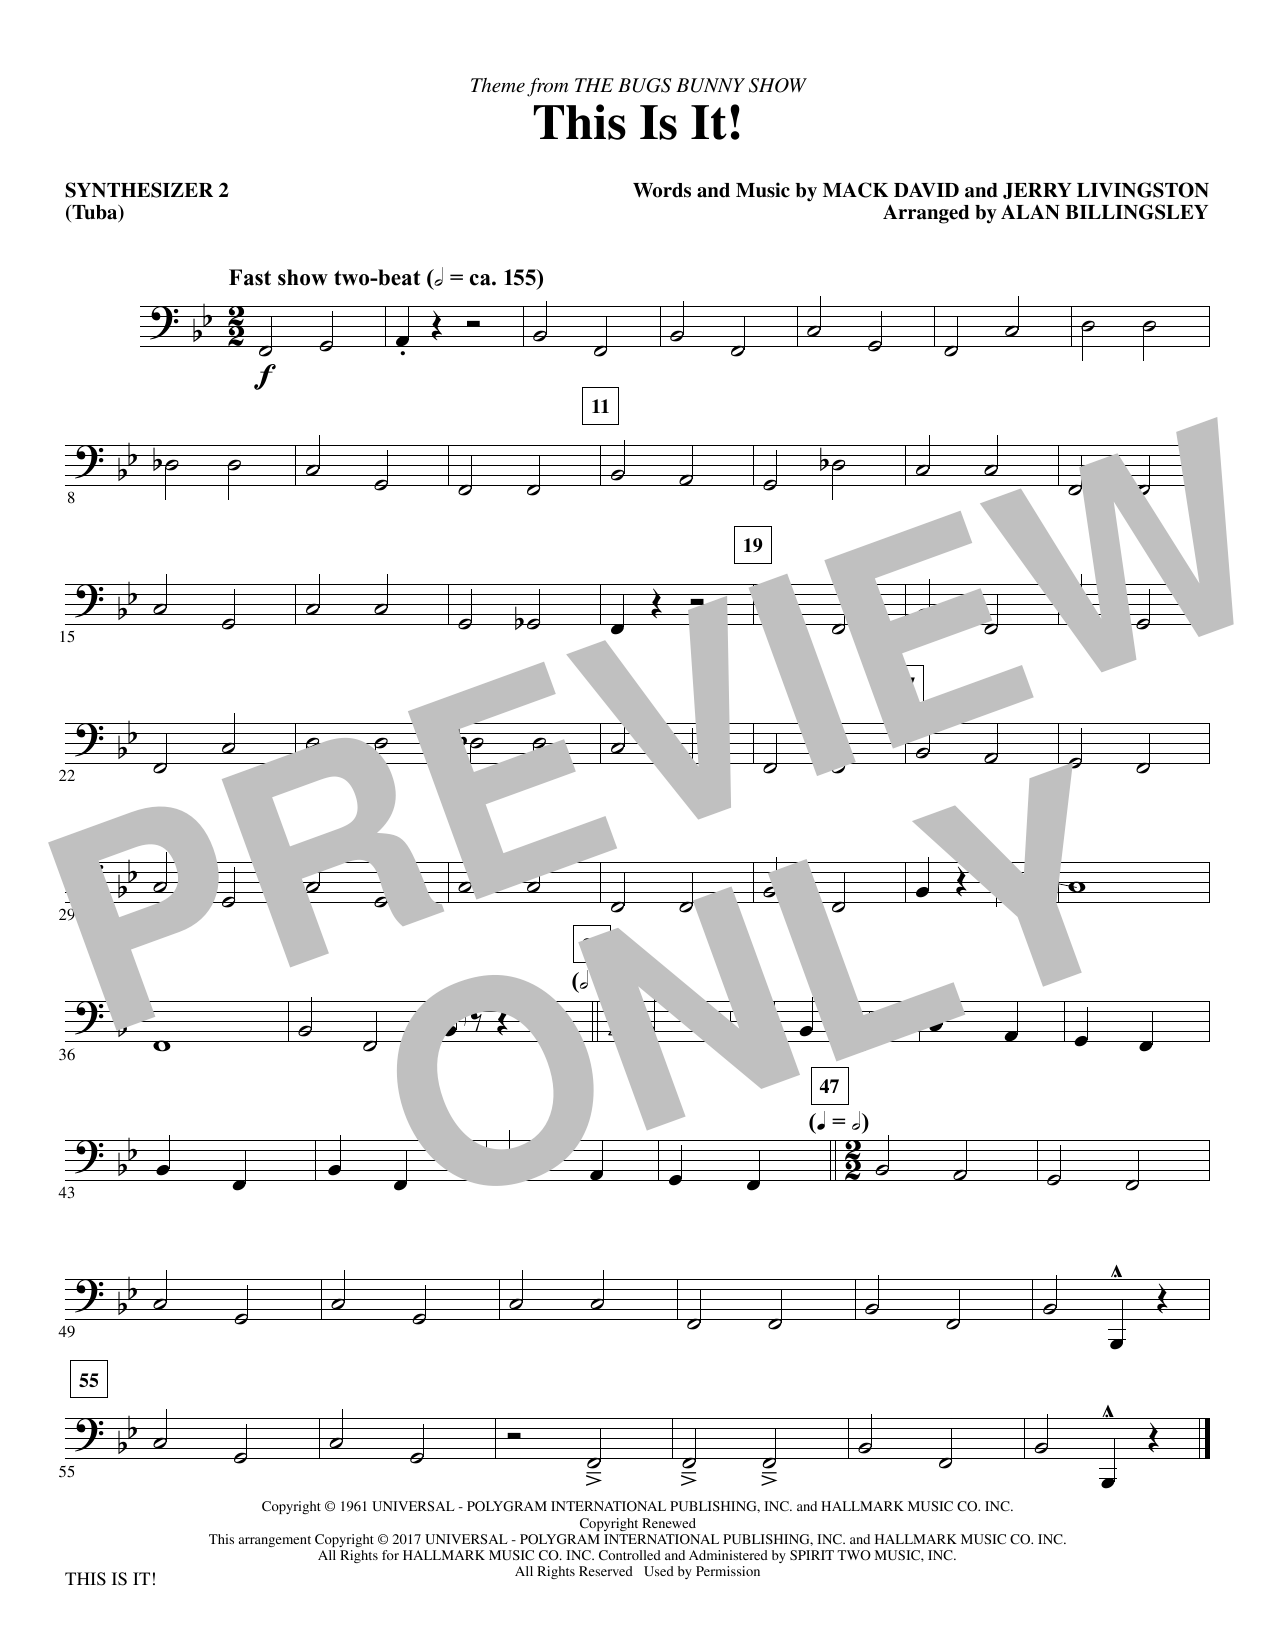 Mack David & Jerry Livingston This Is It! (arr. Alan Billingsley) - Synthesizer II sheet music notes and chords. Download Printable PDF.